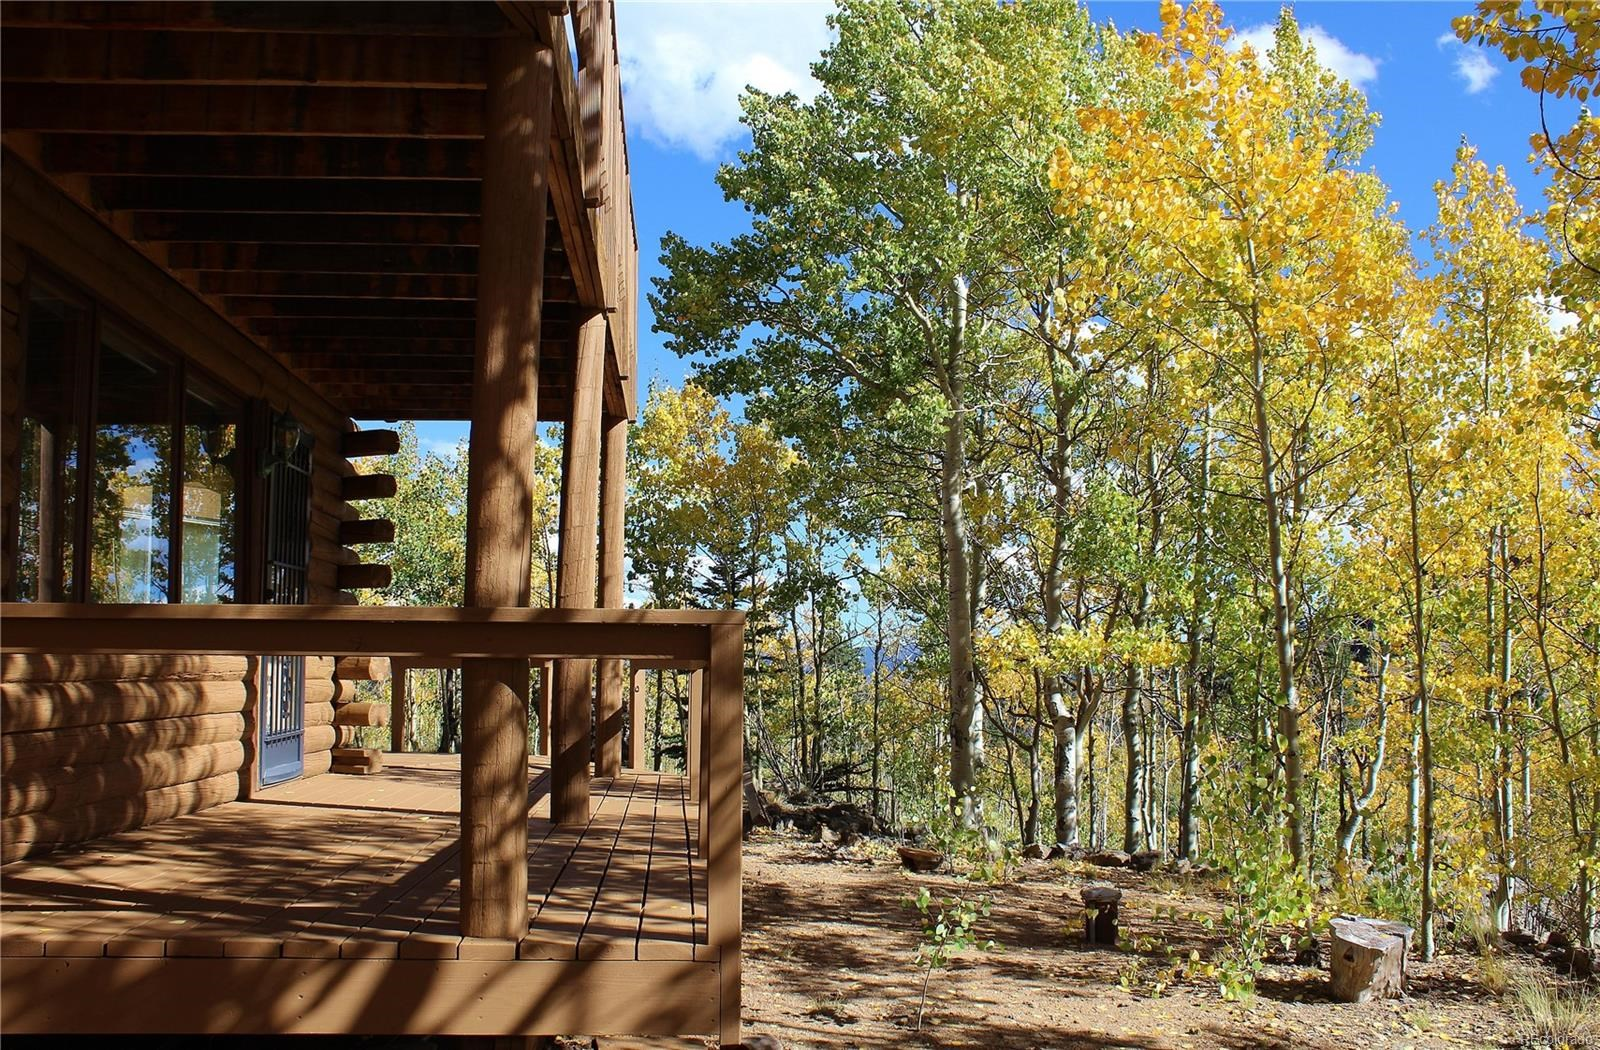 MLS# 3711123 - 6 - 938 Ute Trail, Como, CO 80432